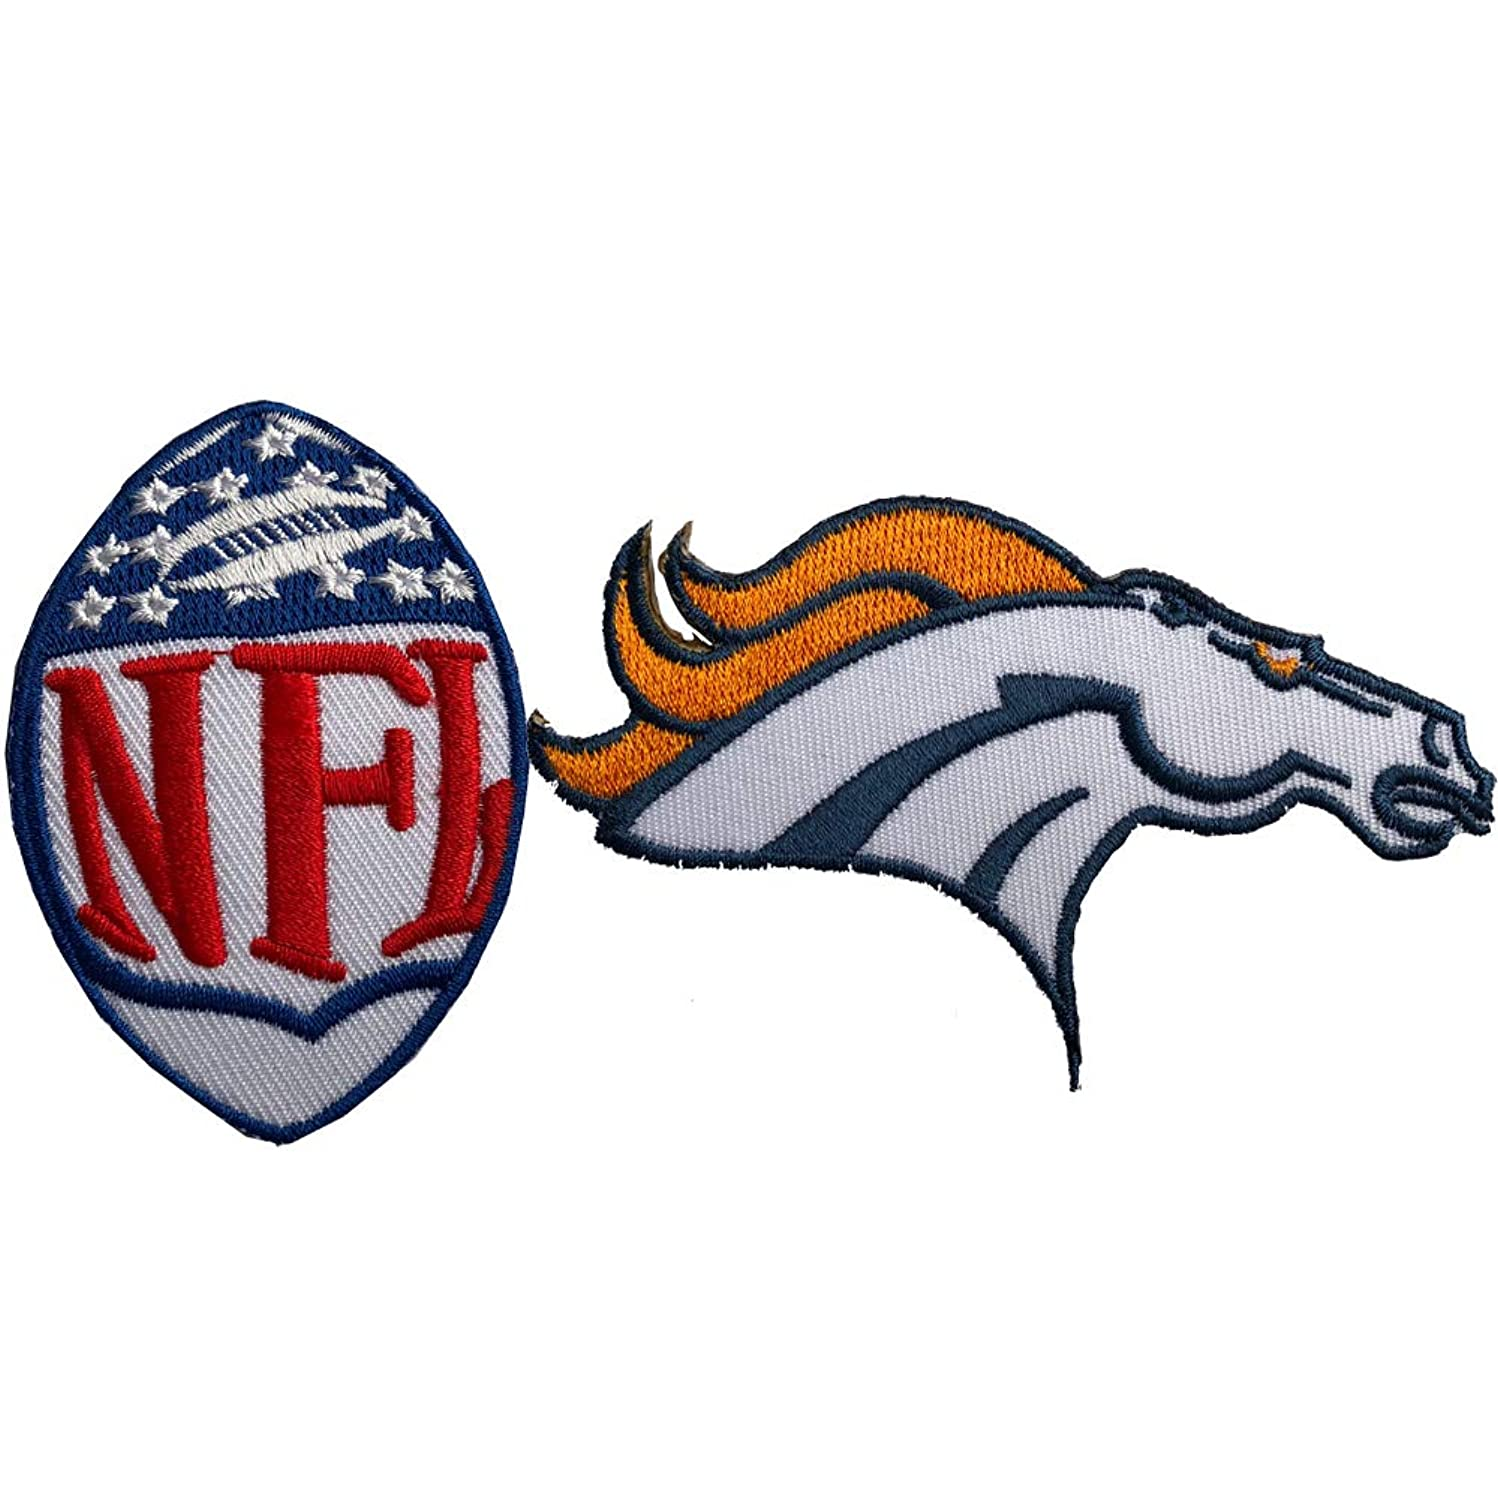 Hipatch Denver Broncos Embroidered Patch Iron on Logo Vest Jacket Cap Hoodie Backpack Patch Iron On/sew on Patch Set of 2Pcs